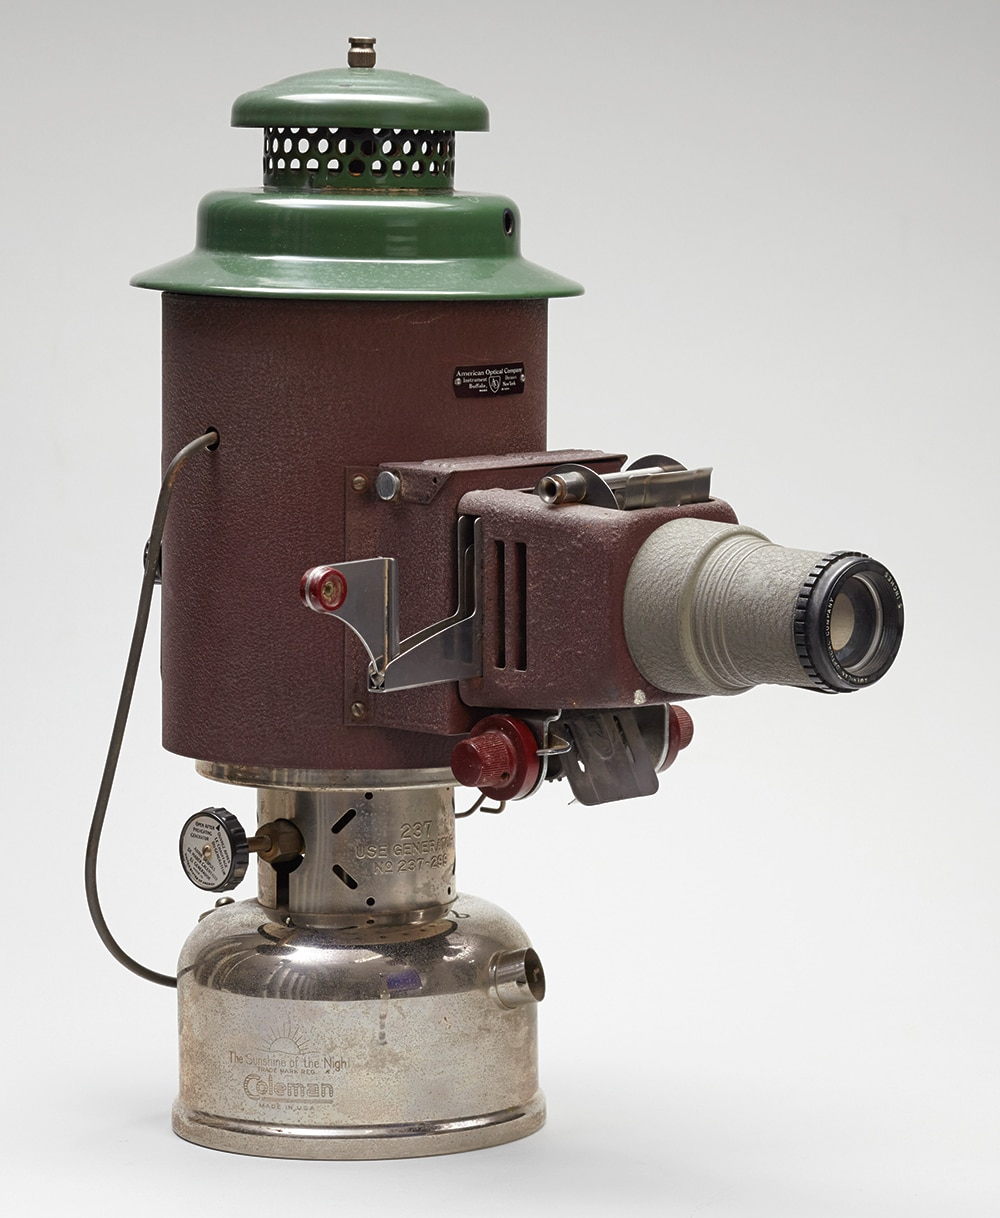 Photo showing a 1950s kerosene-powered slide projector from the U.S. Embassy in Singapore. Diplomats used it to show slides or film strips in areas with limited or no electricity. [Department of State]